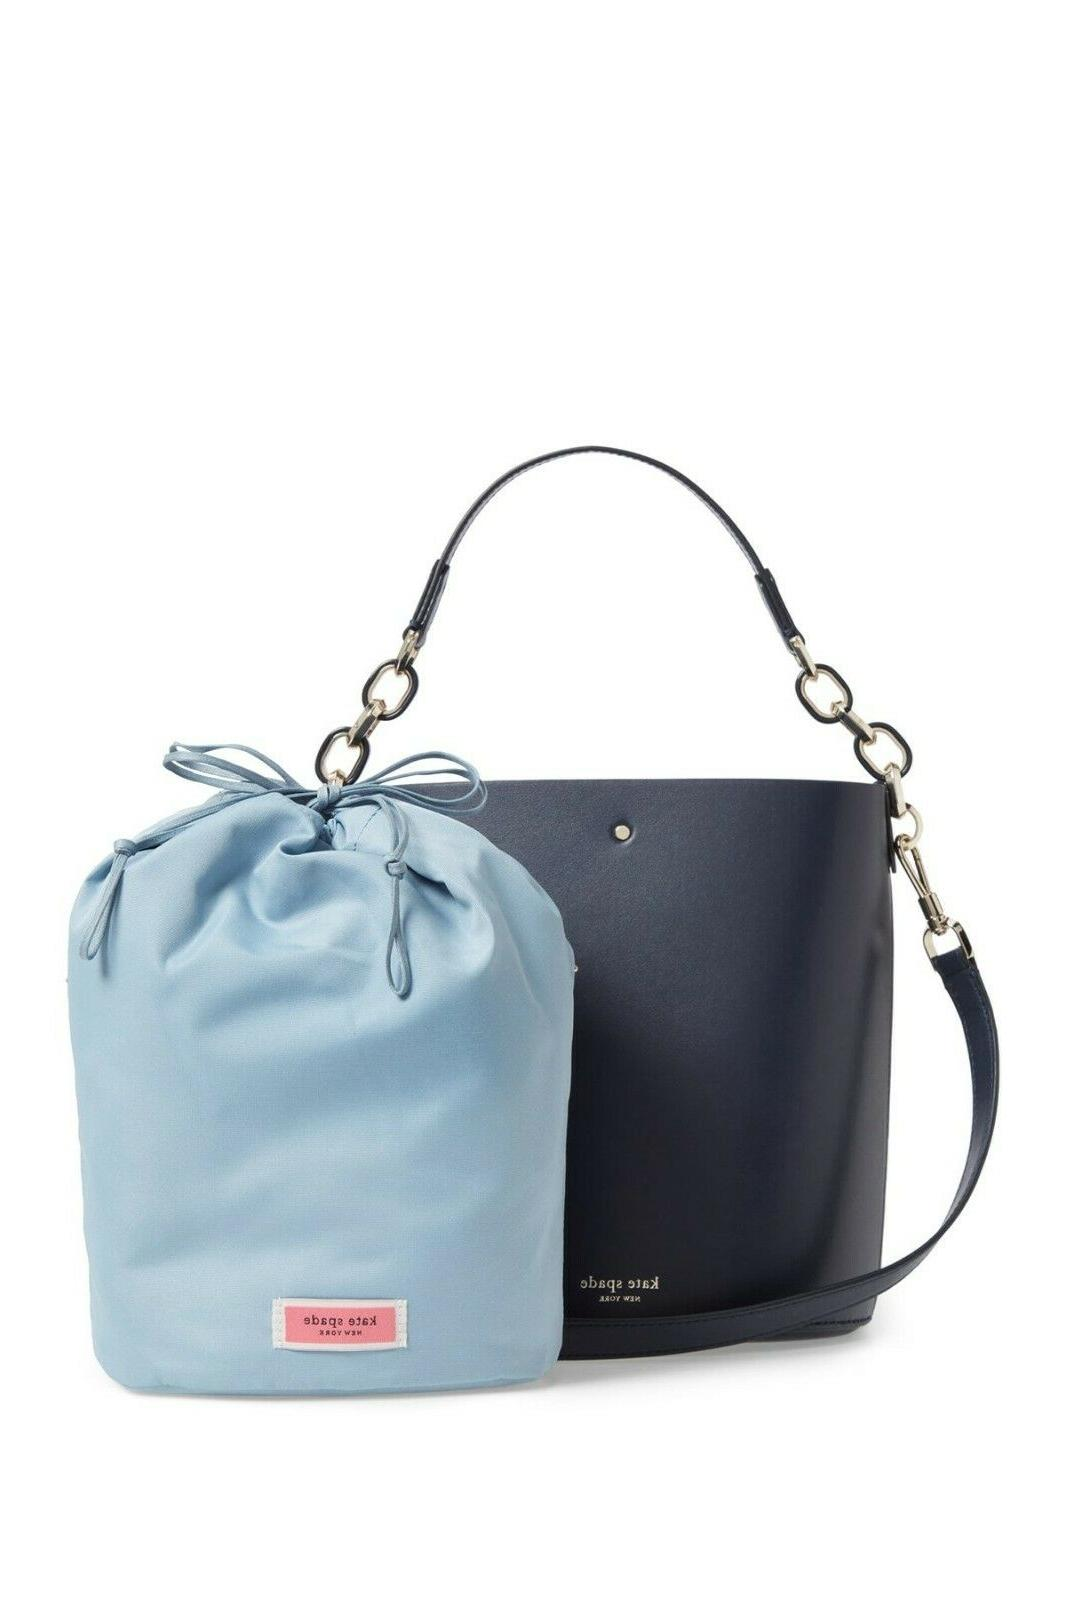 NWT Authentic Kate New York Leather Bucket Bag